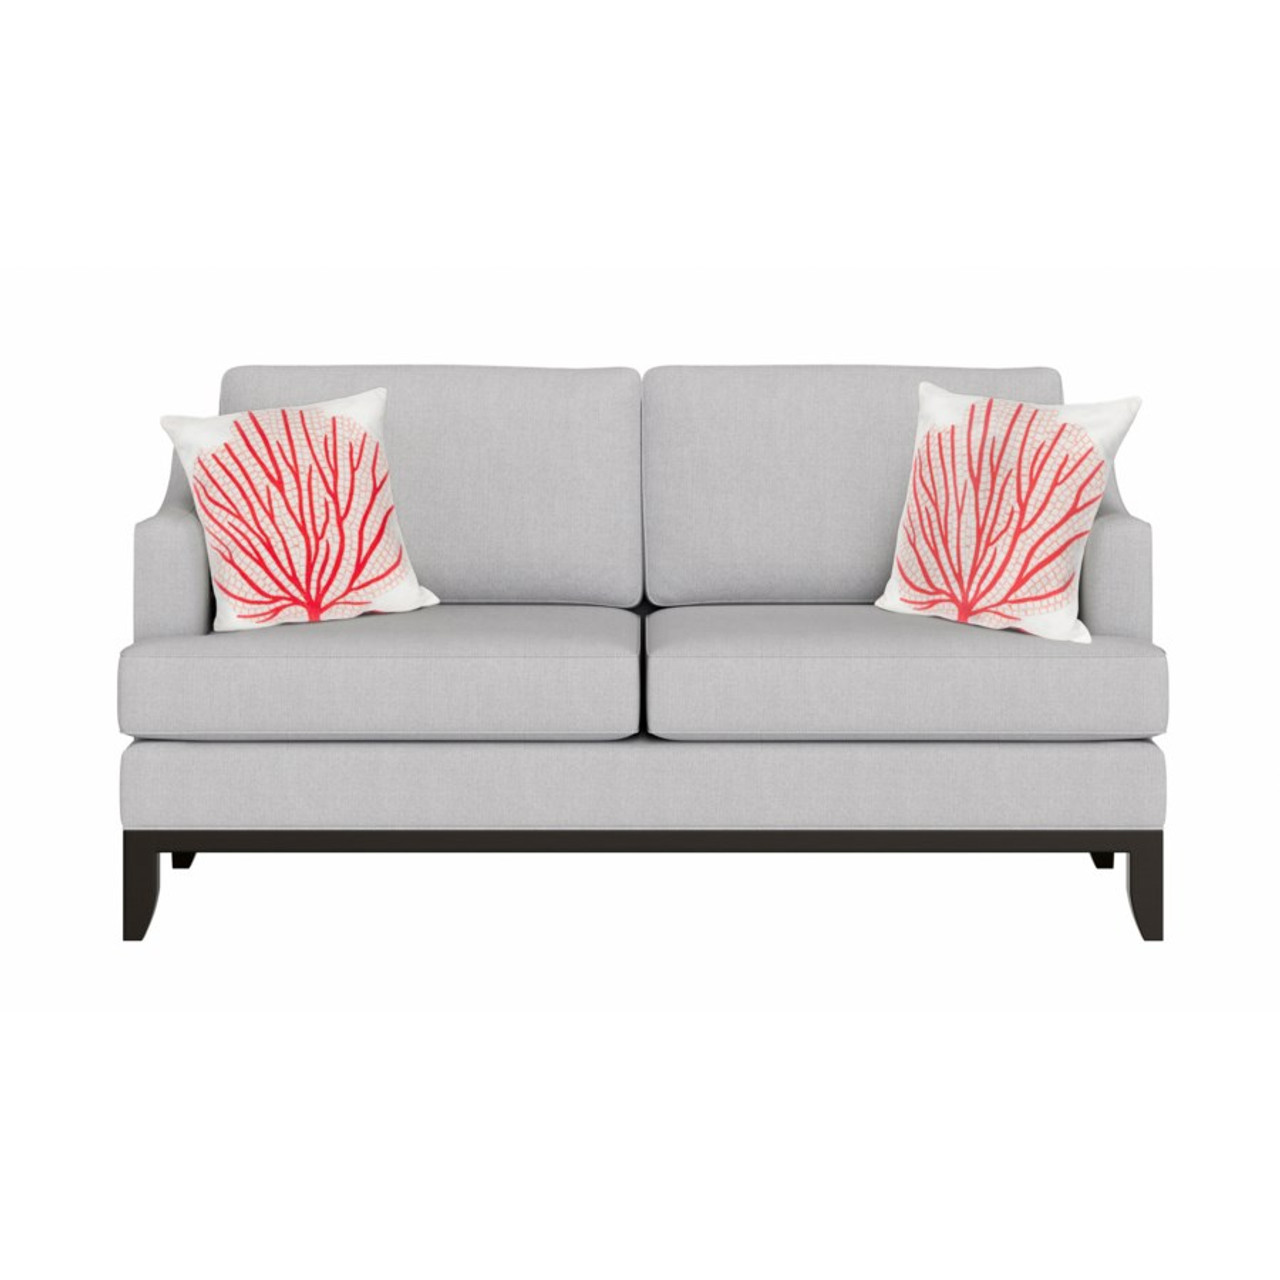 Visions Coral Fan Indoor/Outdoor Throw Pillow -  Square Lifestyle